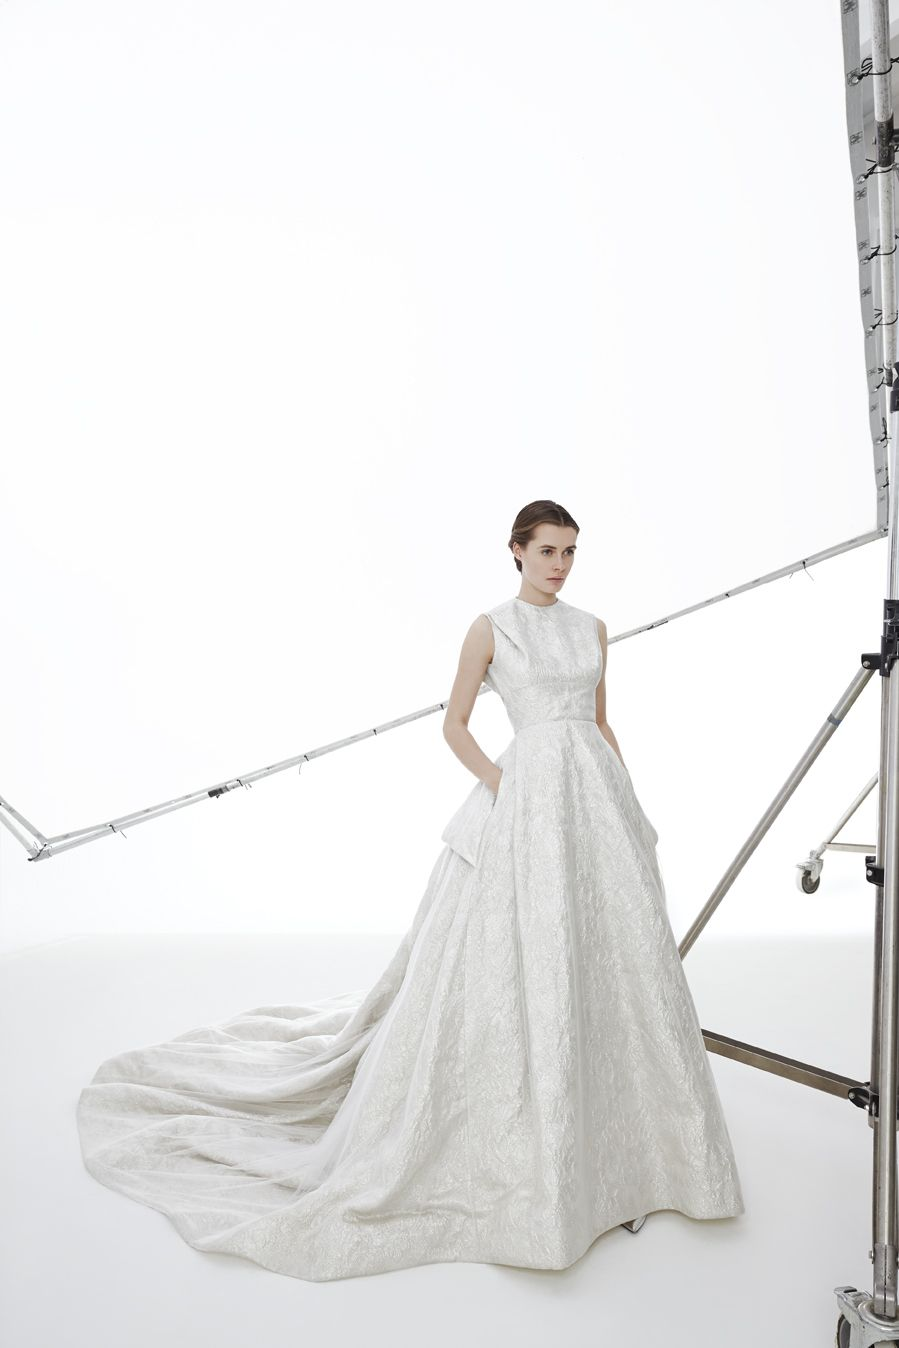 Style VIKTORIA: Ball gown in silver brocade fabric and tulle ...